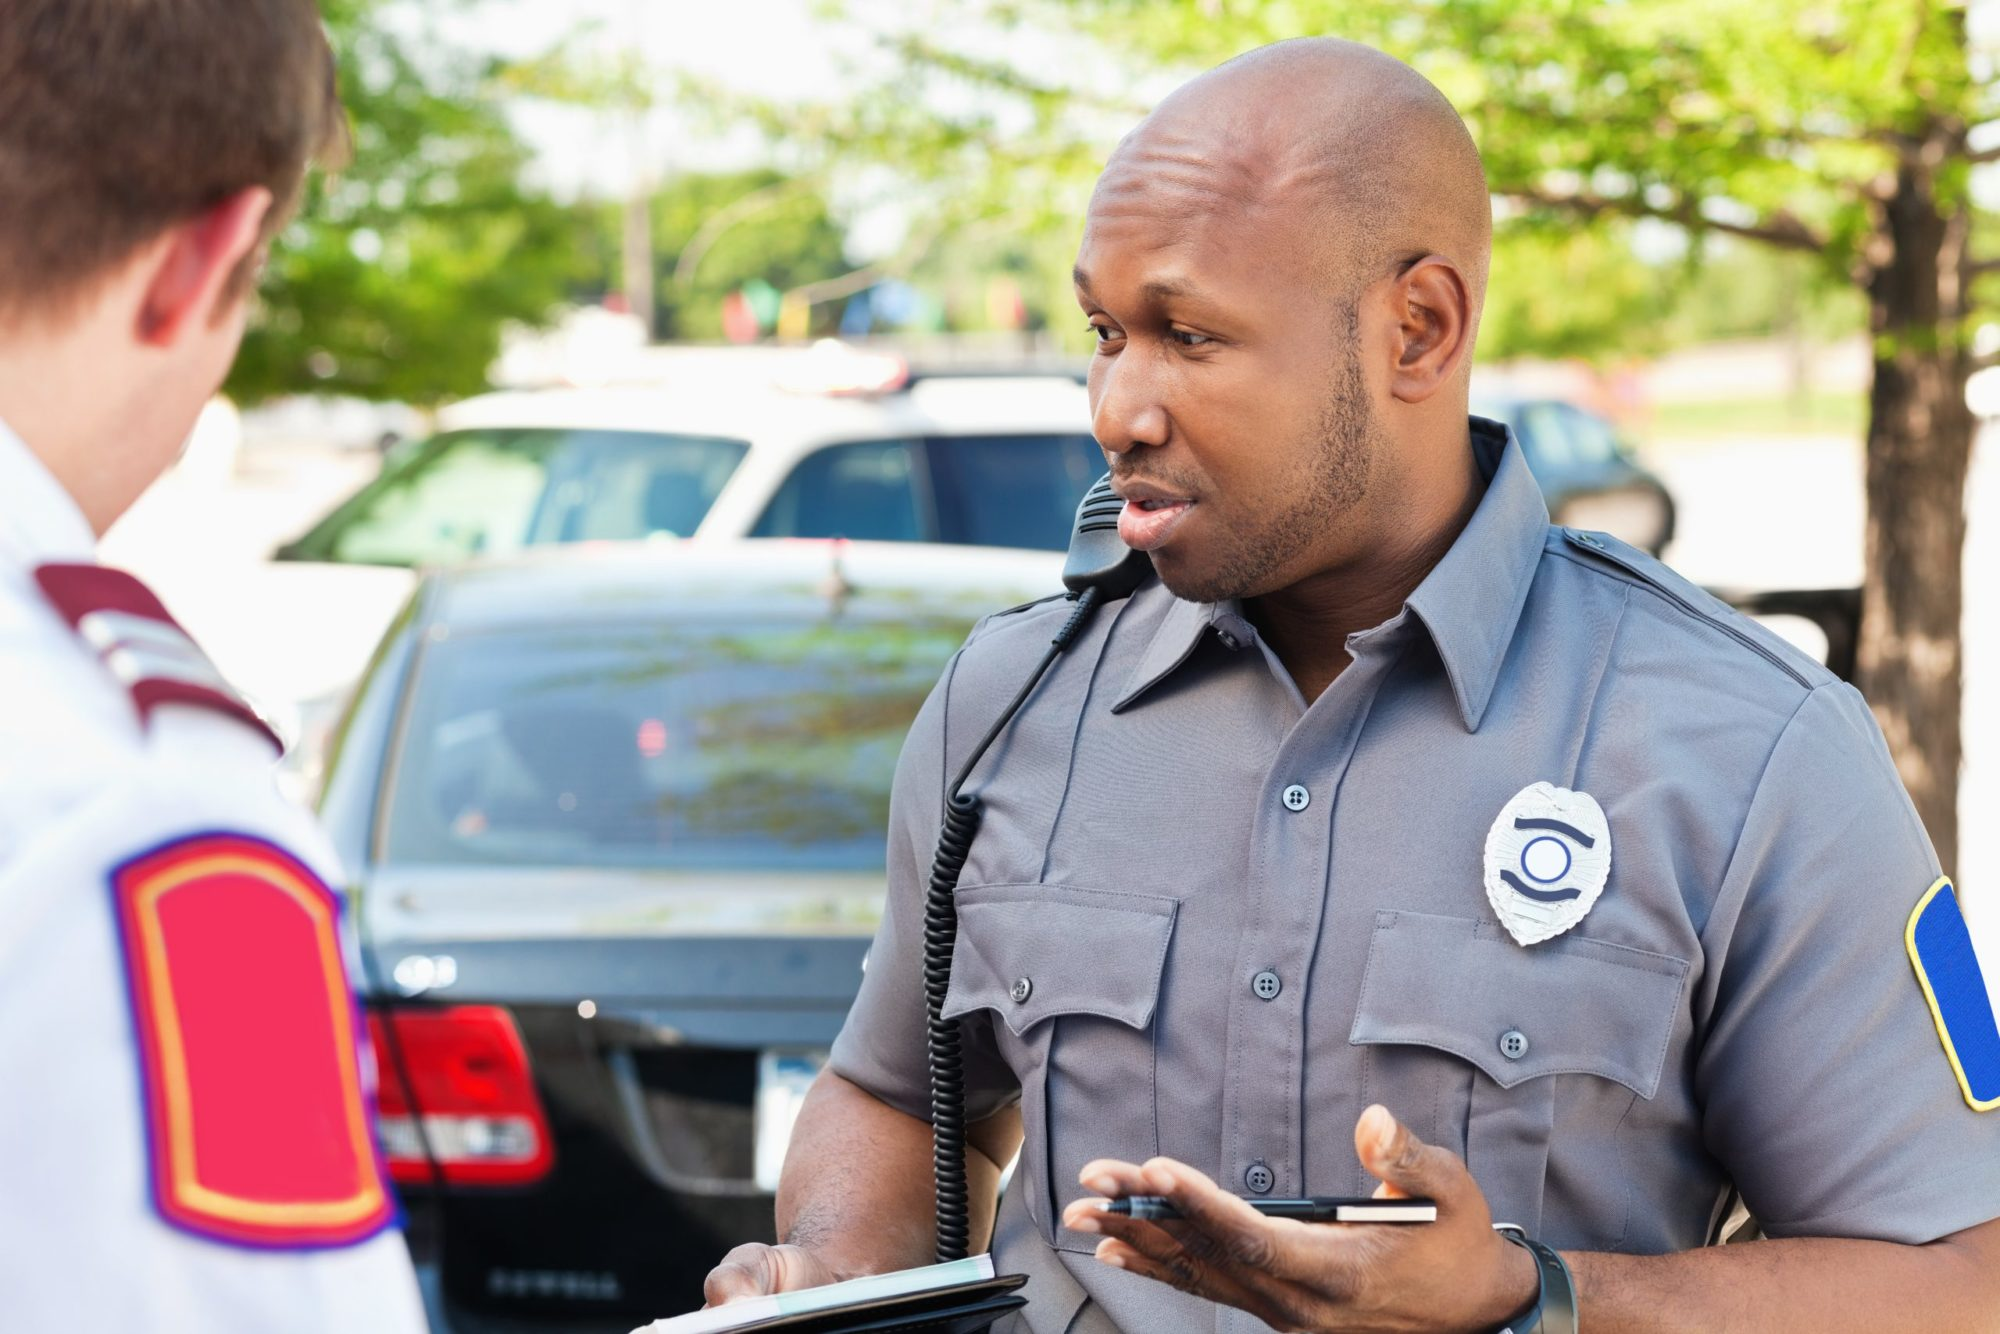 Police officer speaking with people after car accident